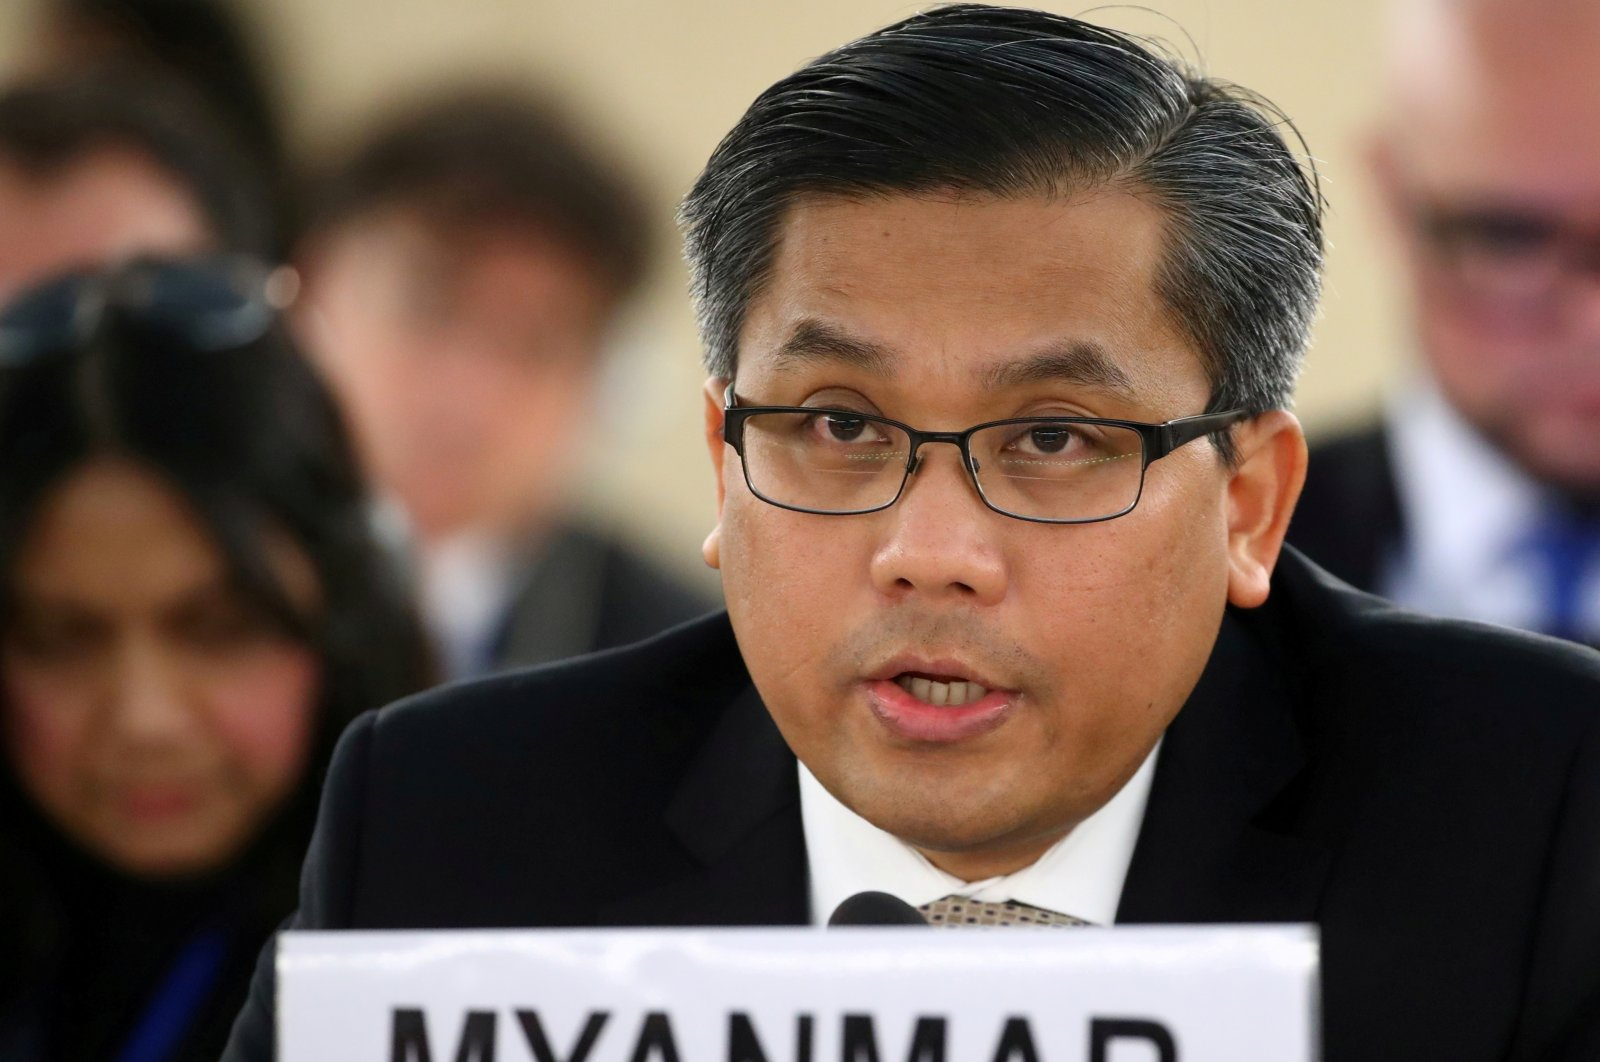 Myanmar's ambassador Kyaw Moe Tun addresses the Human Rights Council at the United Nations in Geneva, Switzerland, March 11, 2019. (Reuters Photo)